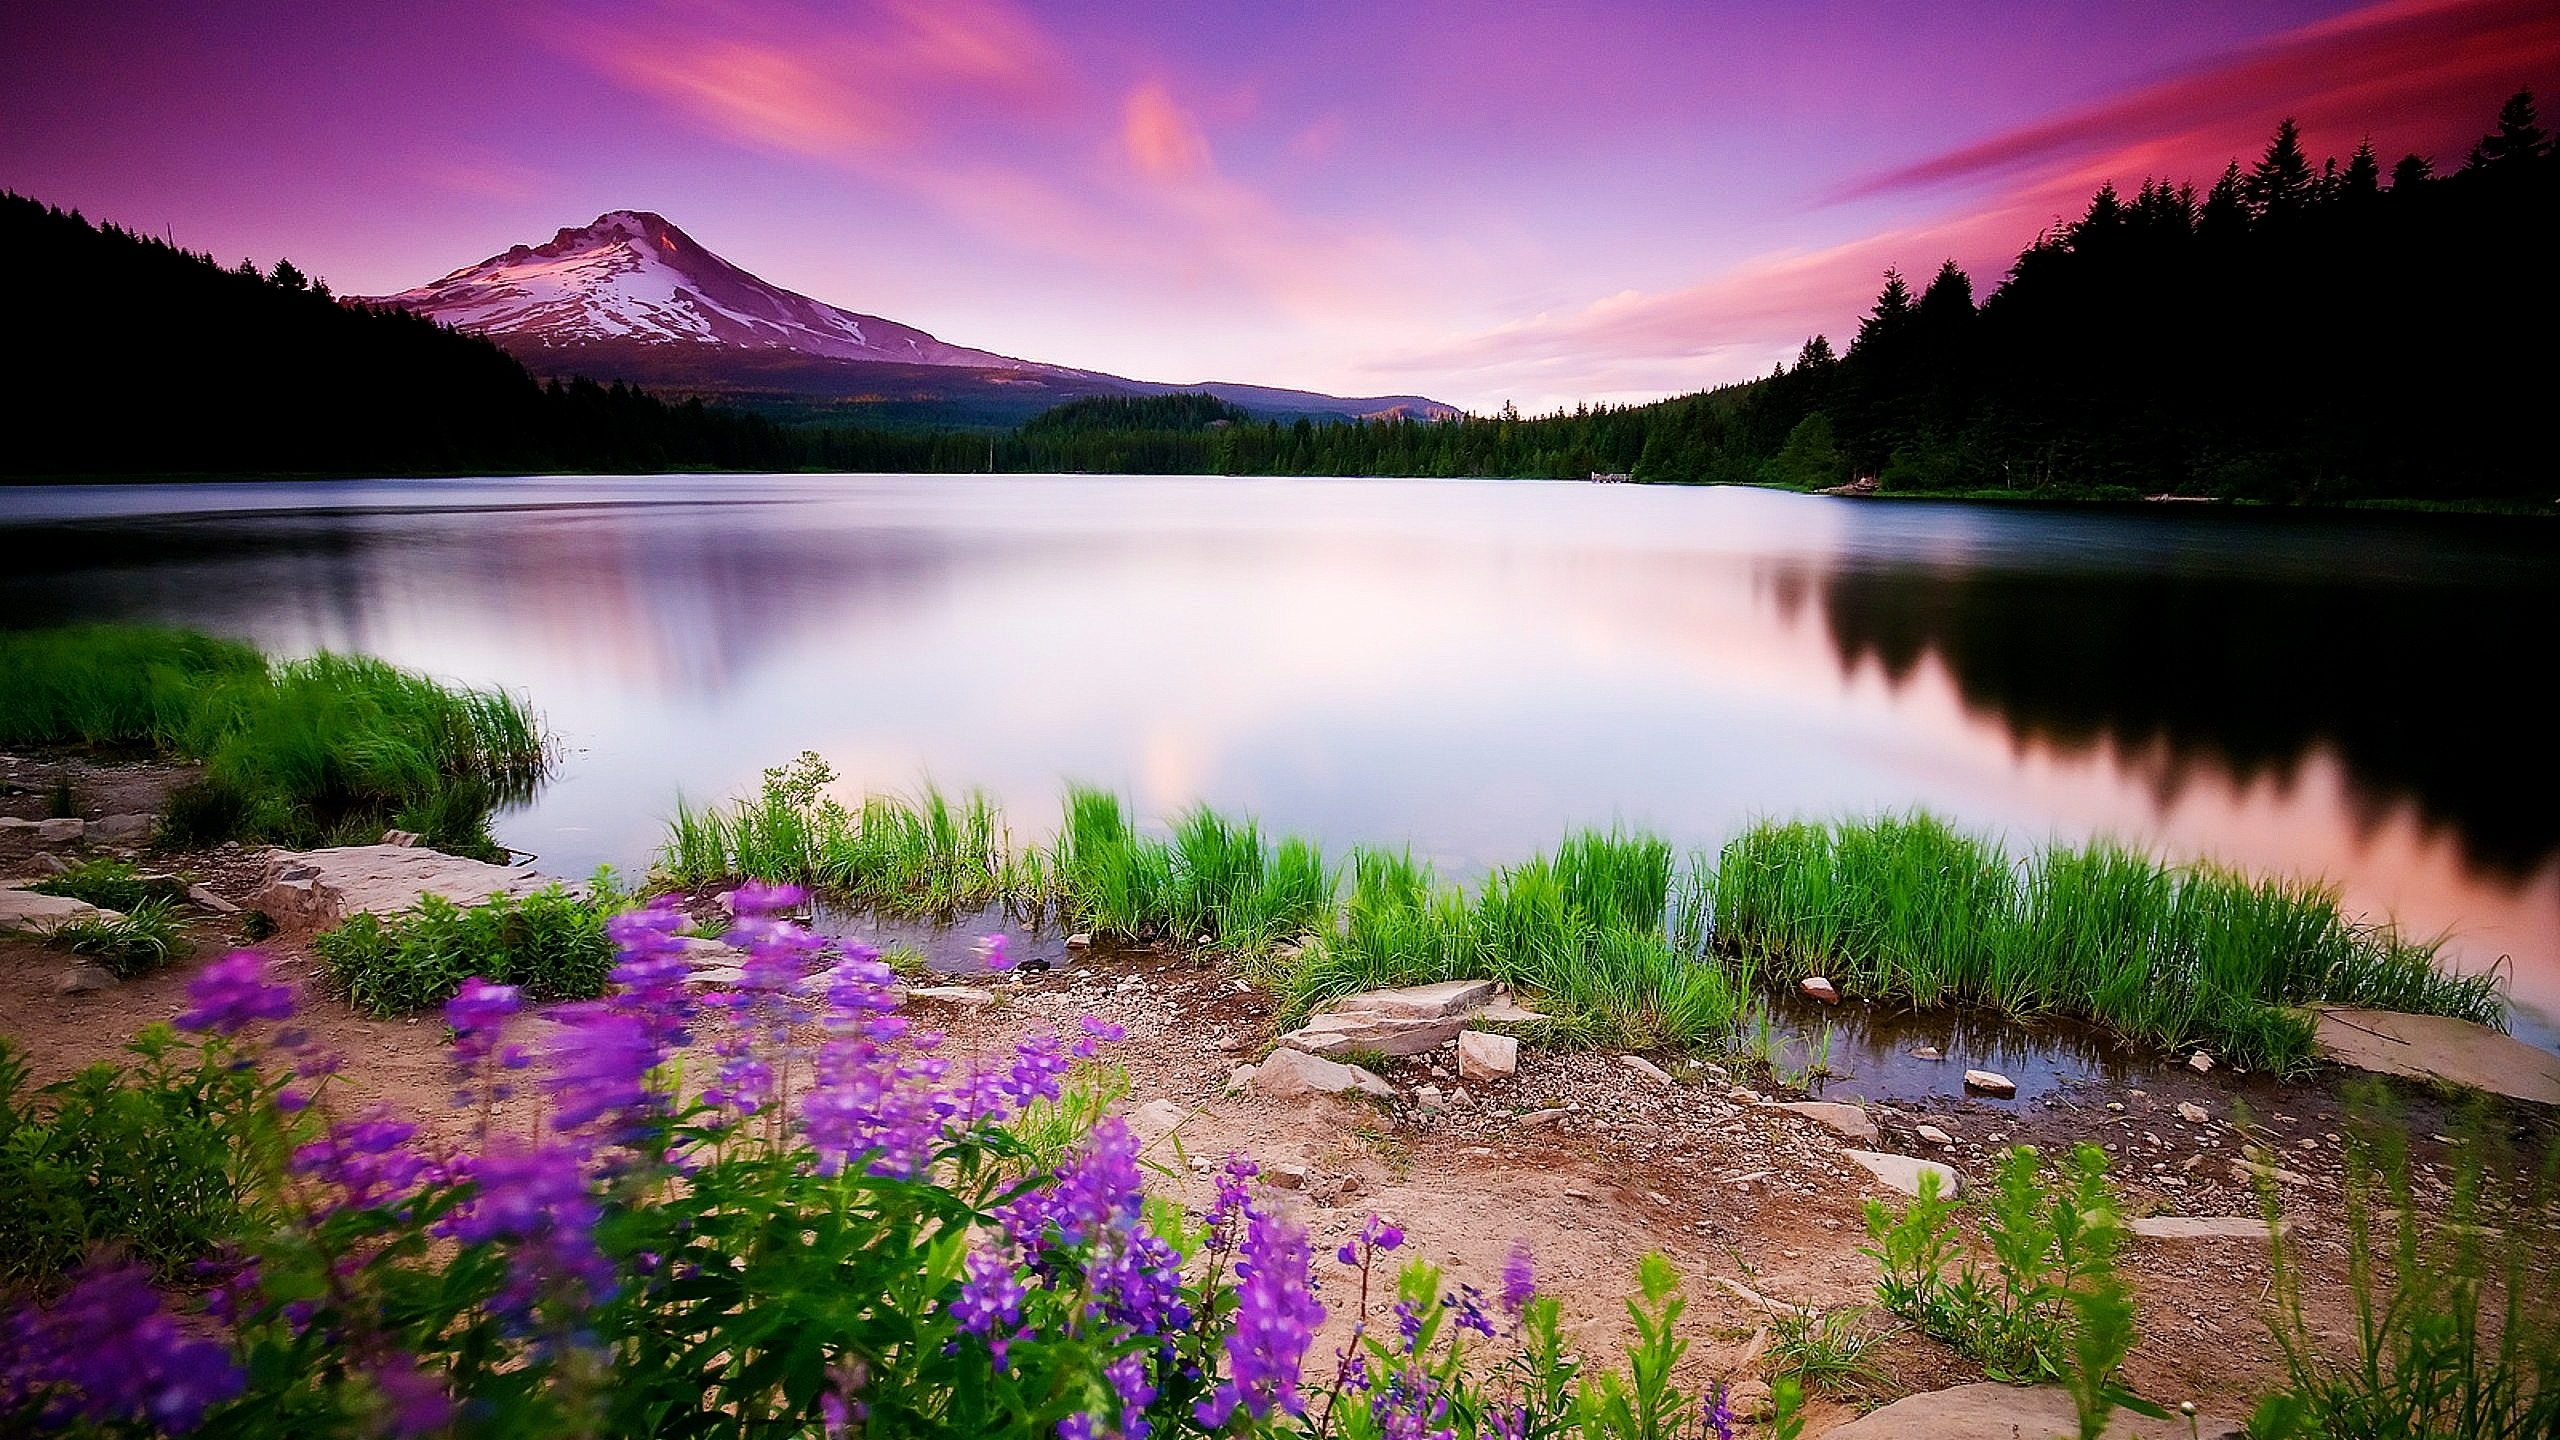 10 New Hd Widescreen Nature Backgrounds FULL HD 1080p For PC Background